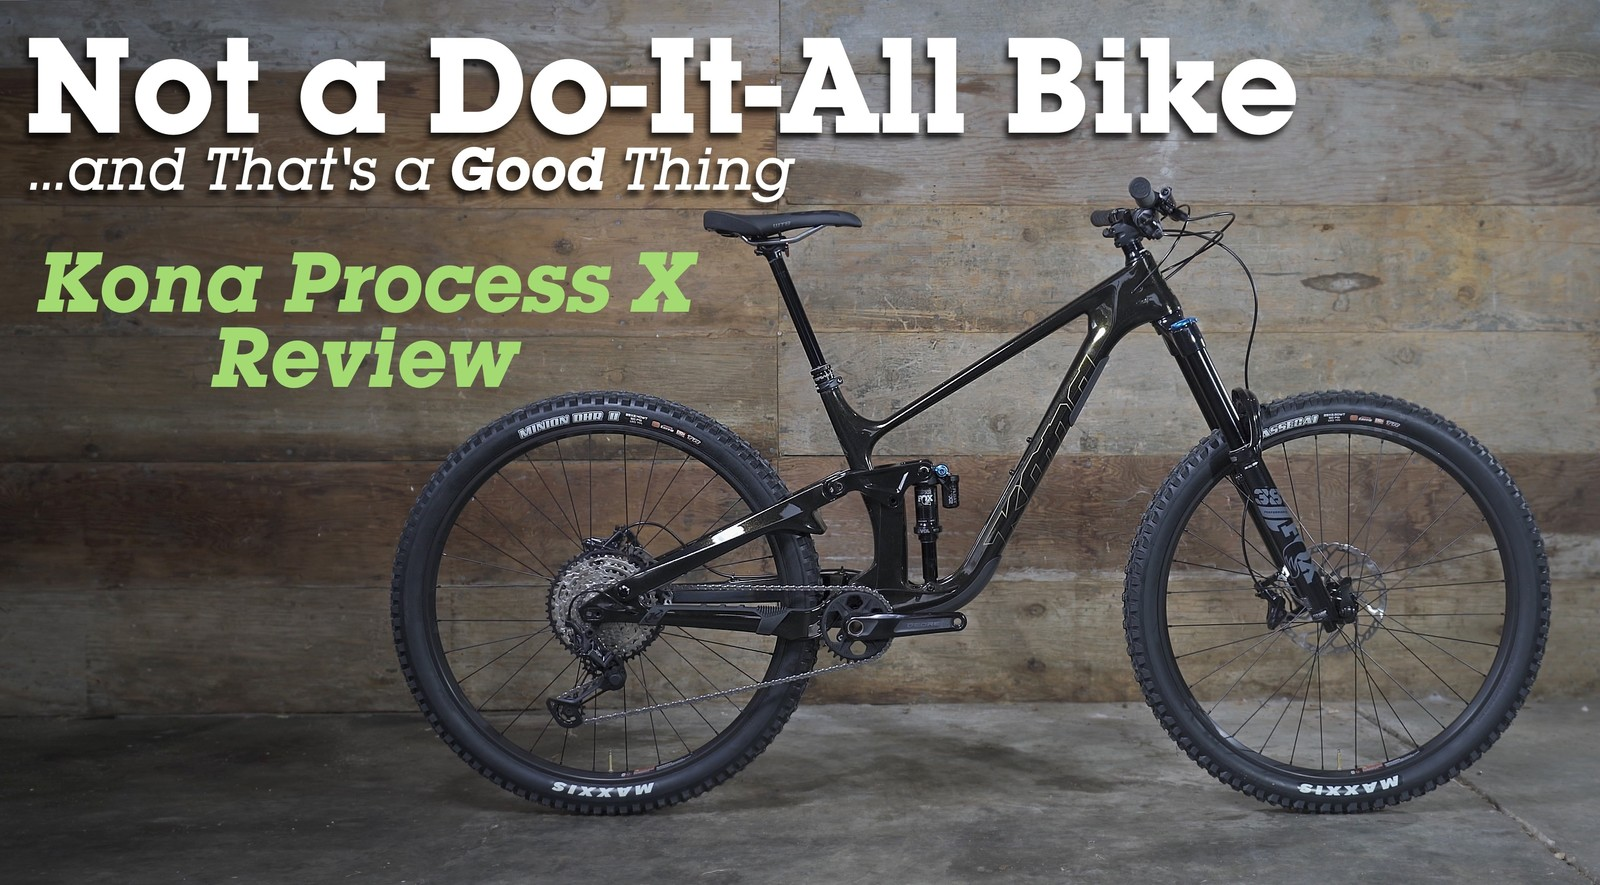 Kona Process X Review - This is Not a Do-It-All Bike, and That's a Good Thing